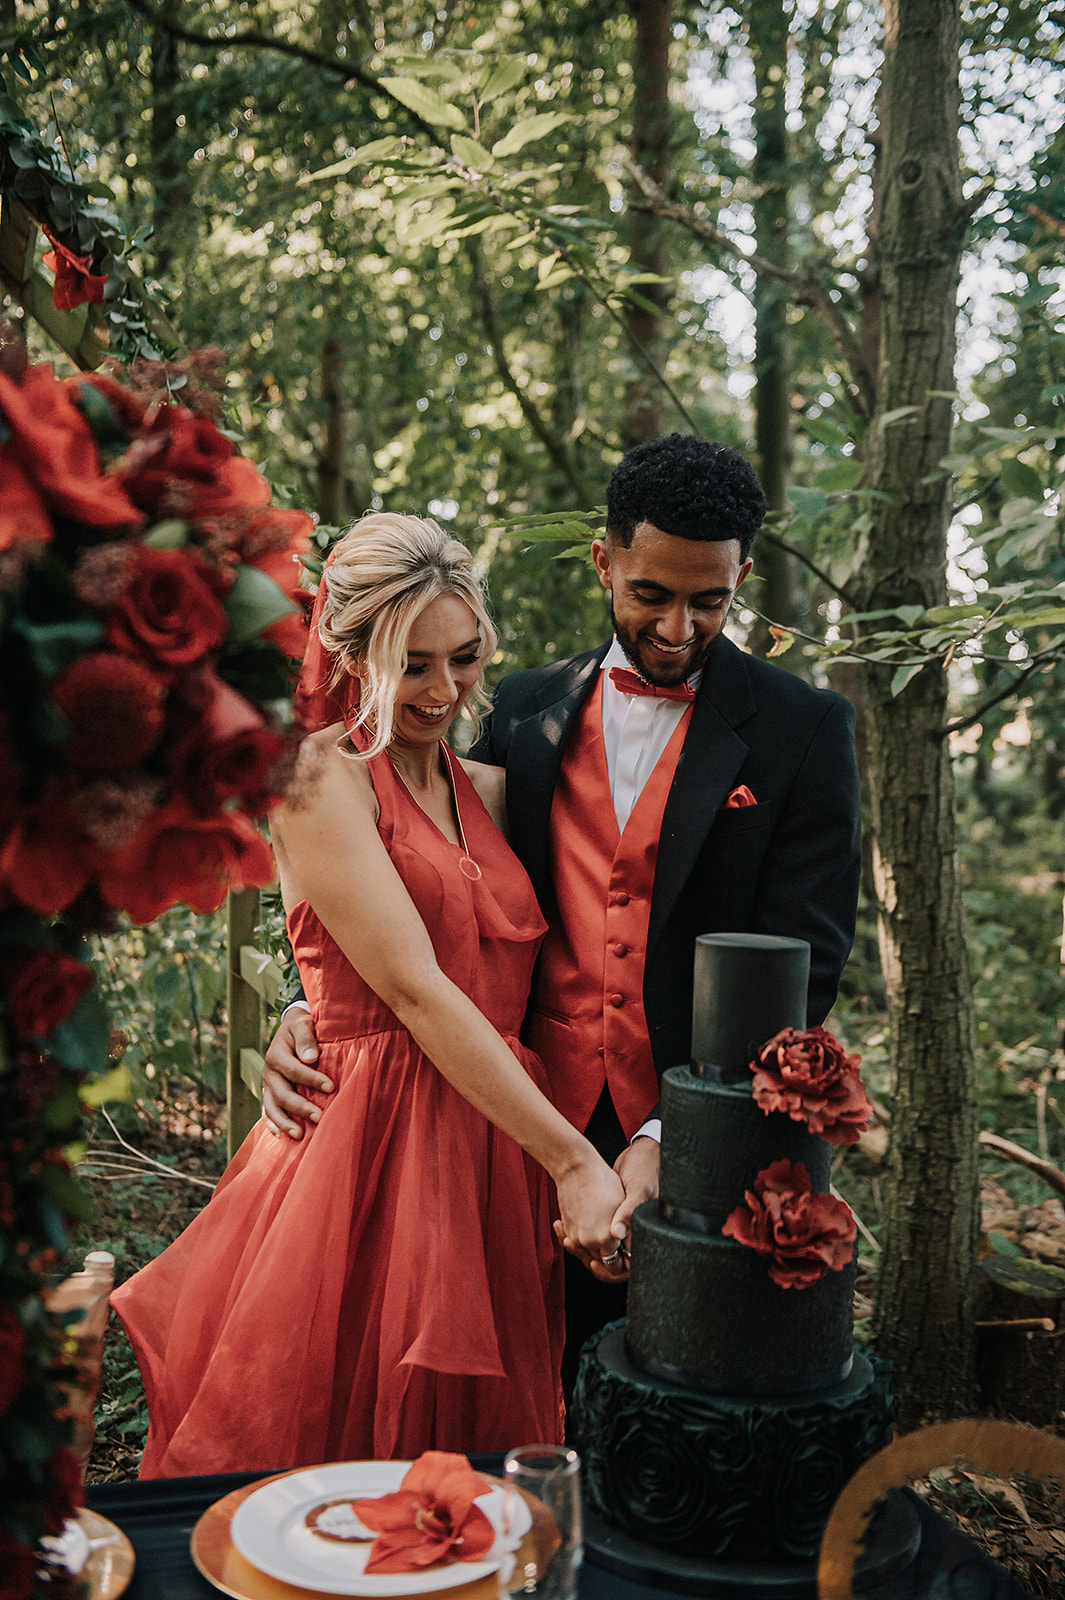 red wedding - red wedding dress - black wedding cake - forest wedding - cutting the cake